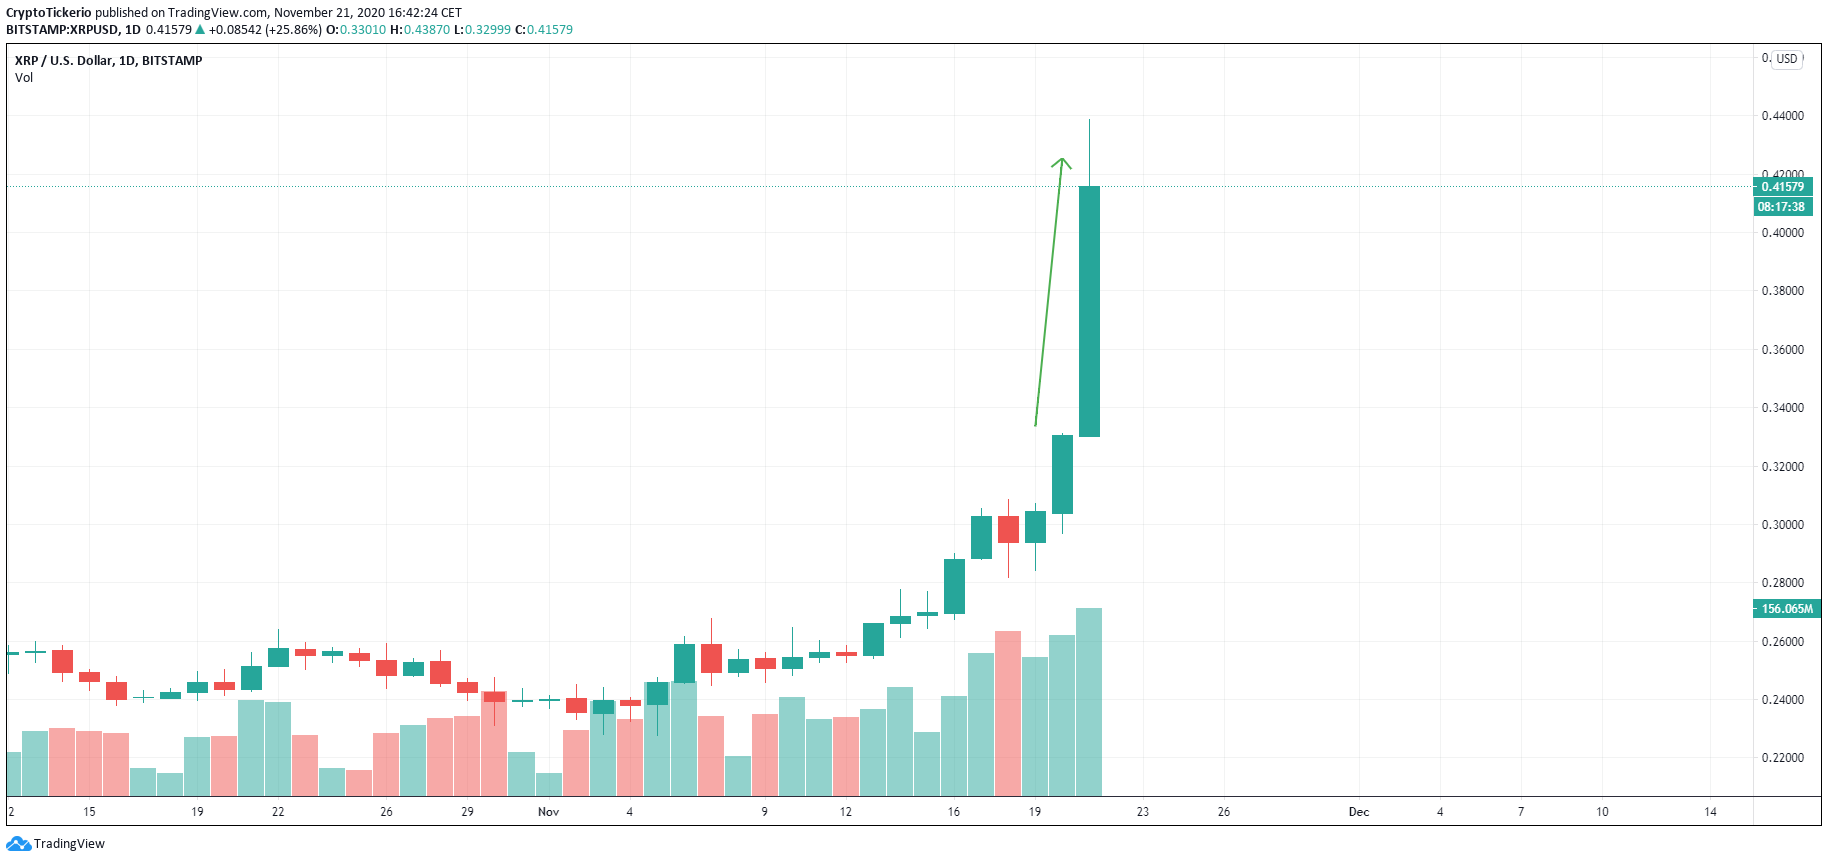 XRP/USD 1-Day Price chart, showing the price increase on the 21st of November 2020